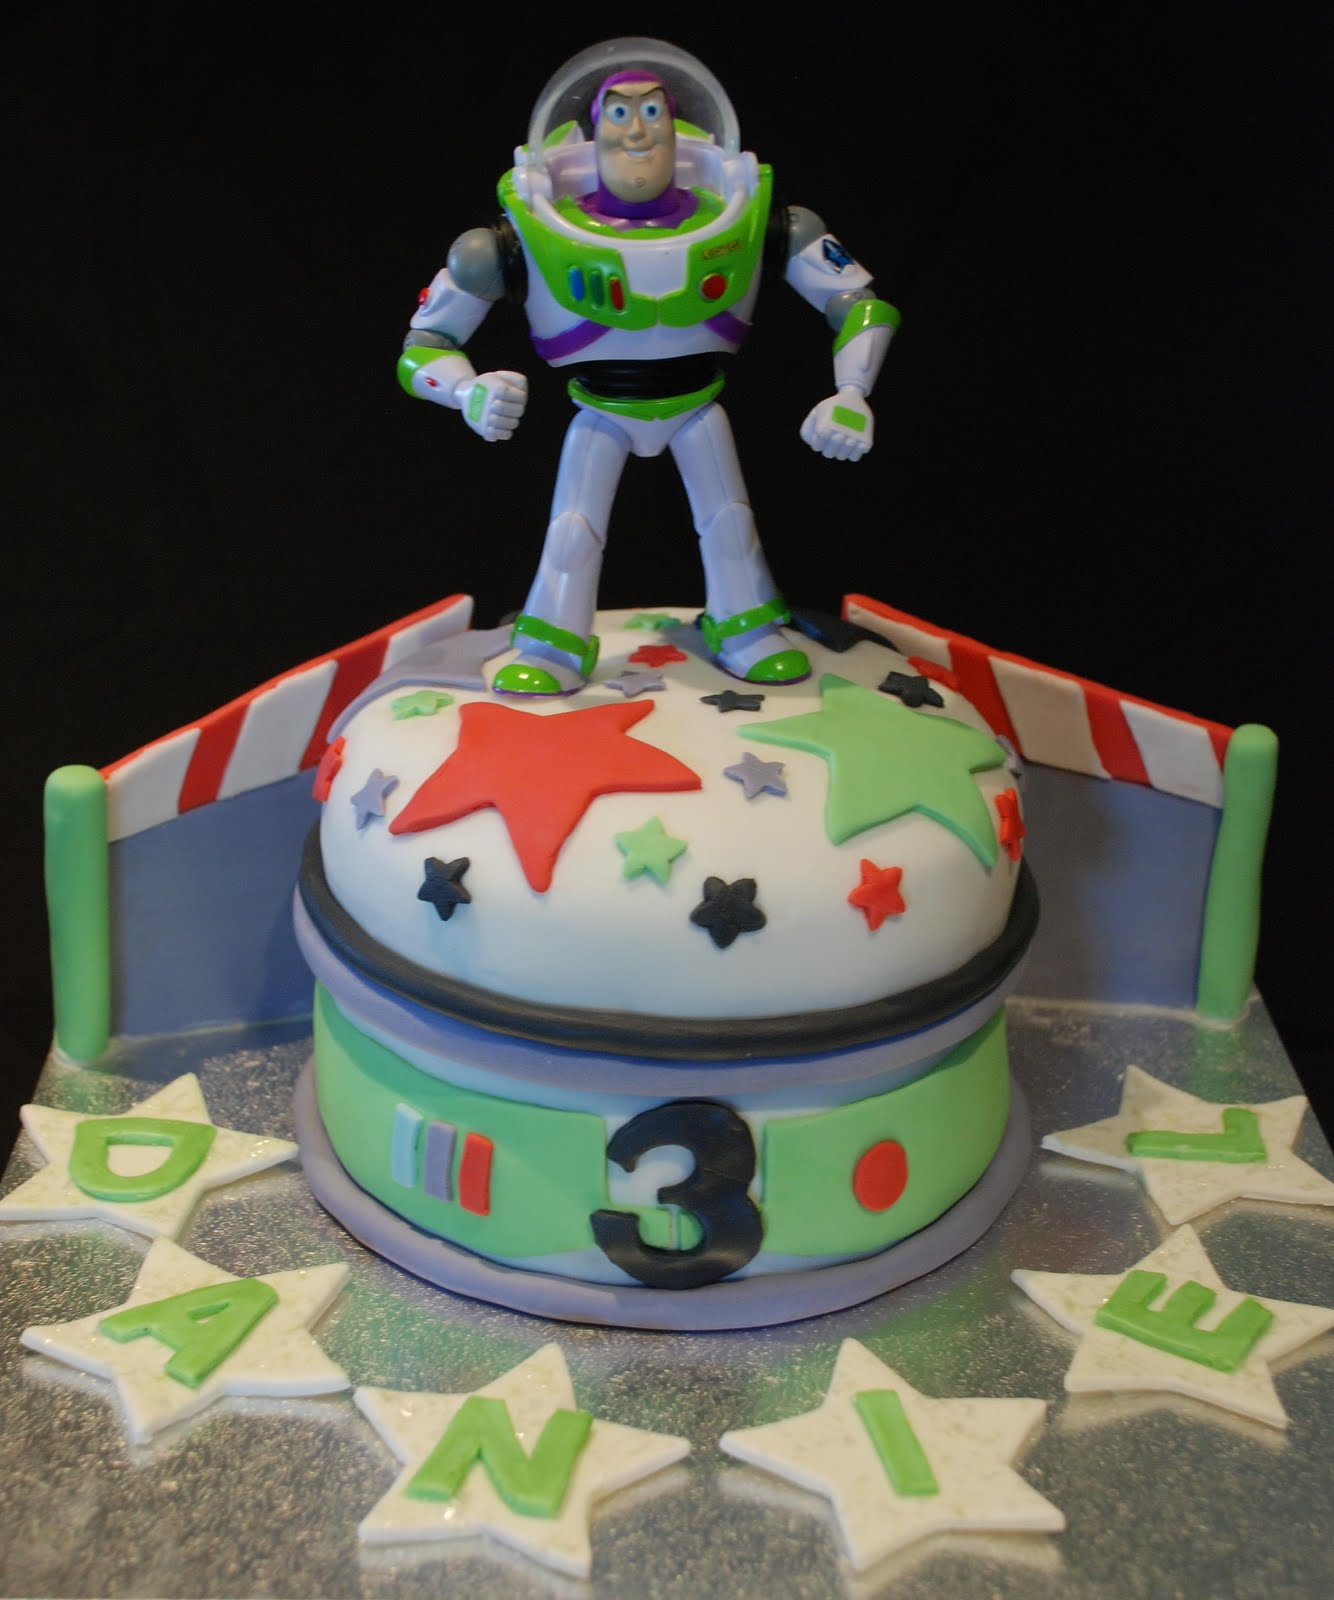 How To Make A Buzz Lightyear Cake